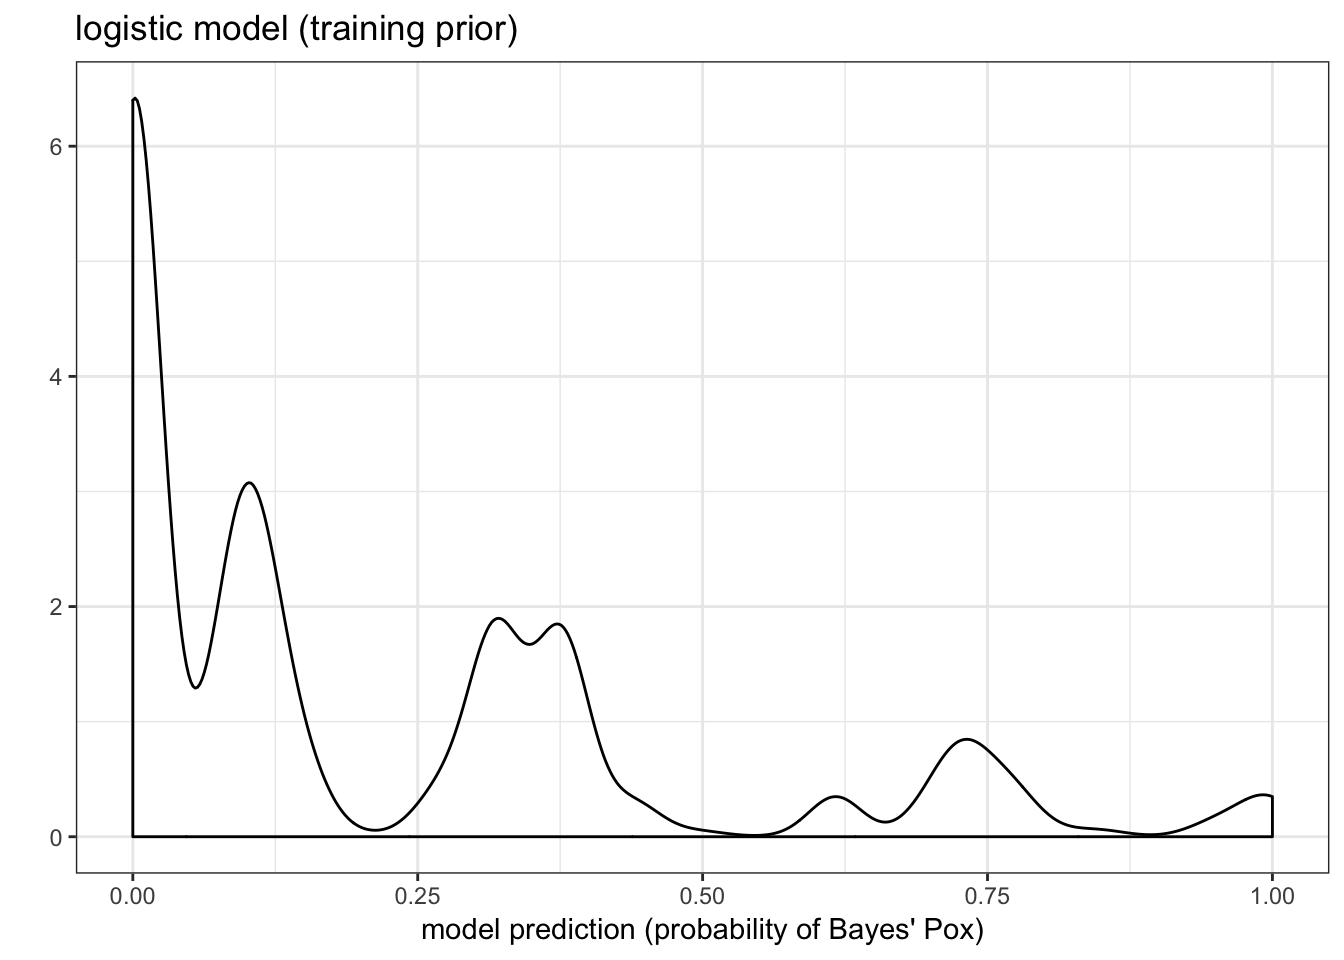 The distribution of the prediction for our logistic model given the prior in the training data.